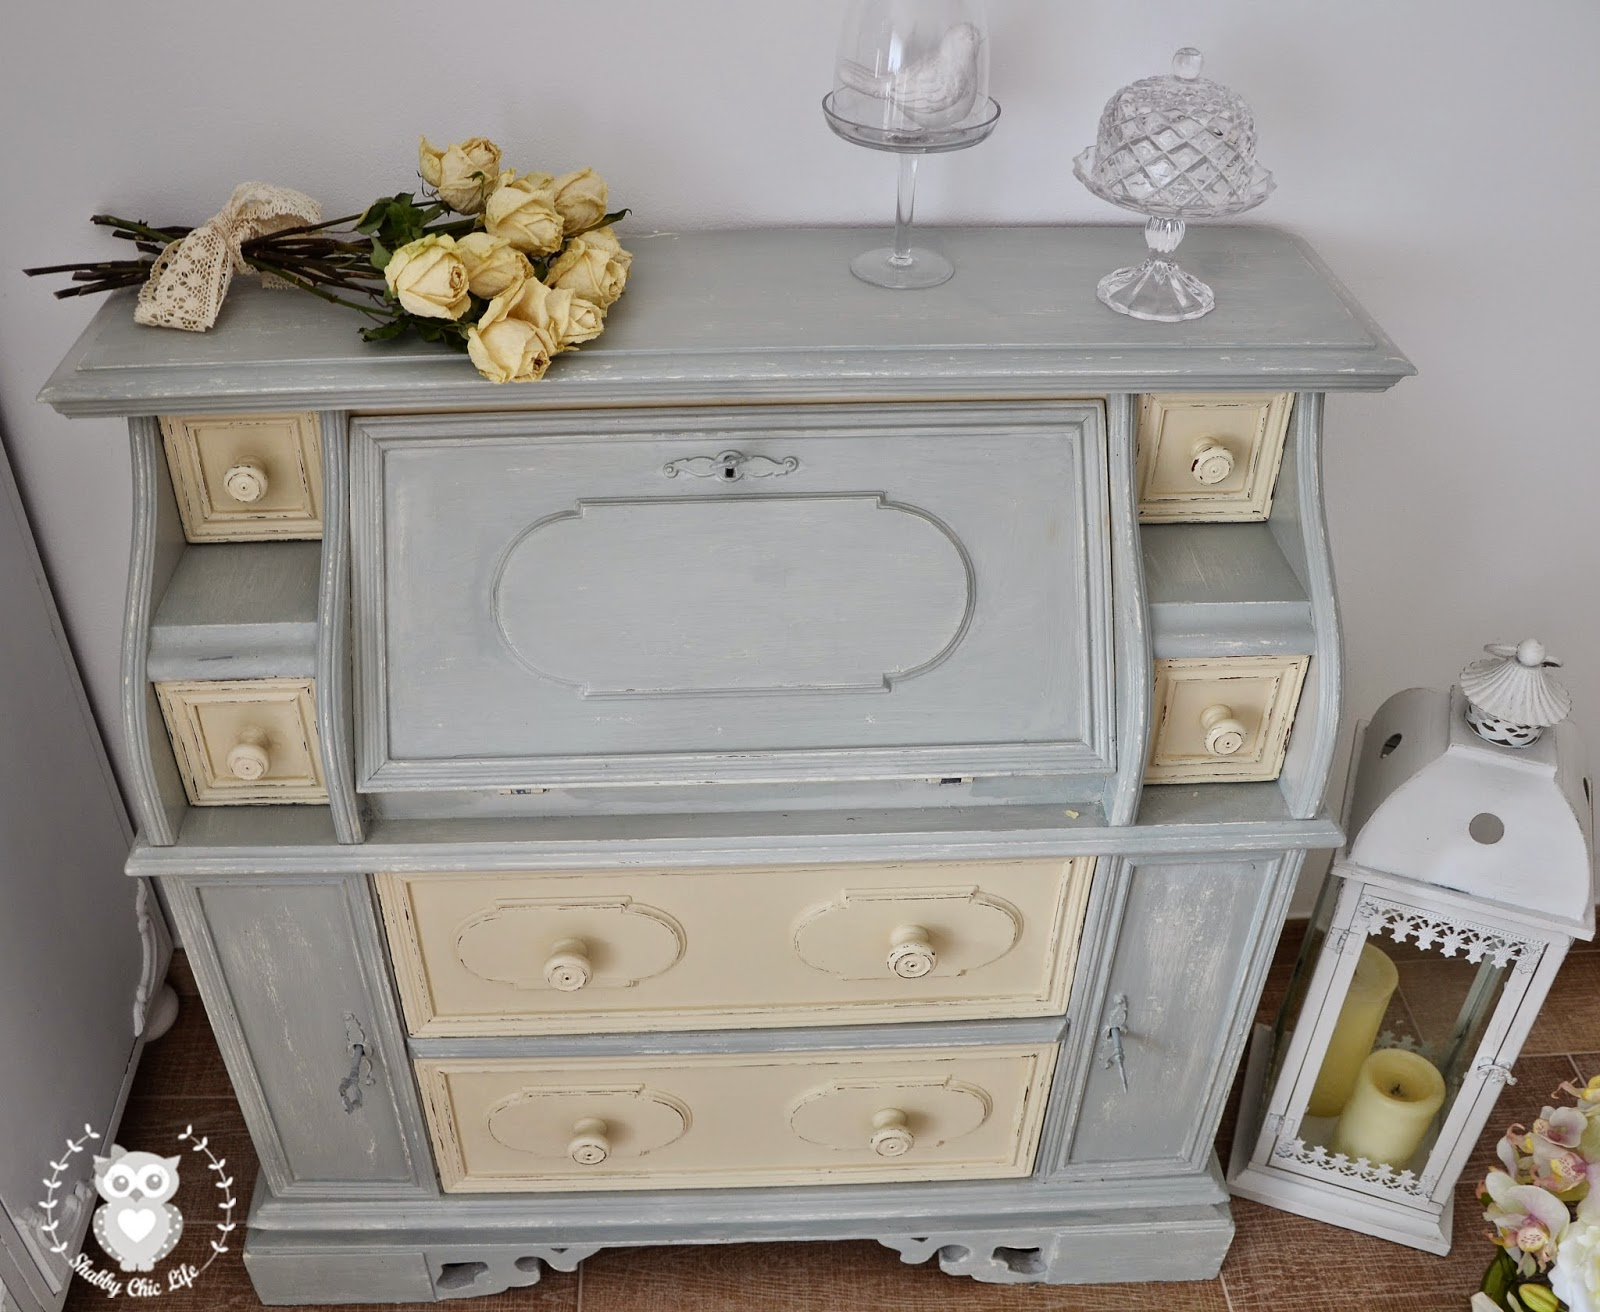 Credenza Shabby Per Bagno : Mobili per bagno shabby chic awesome with